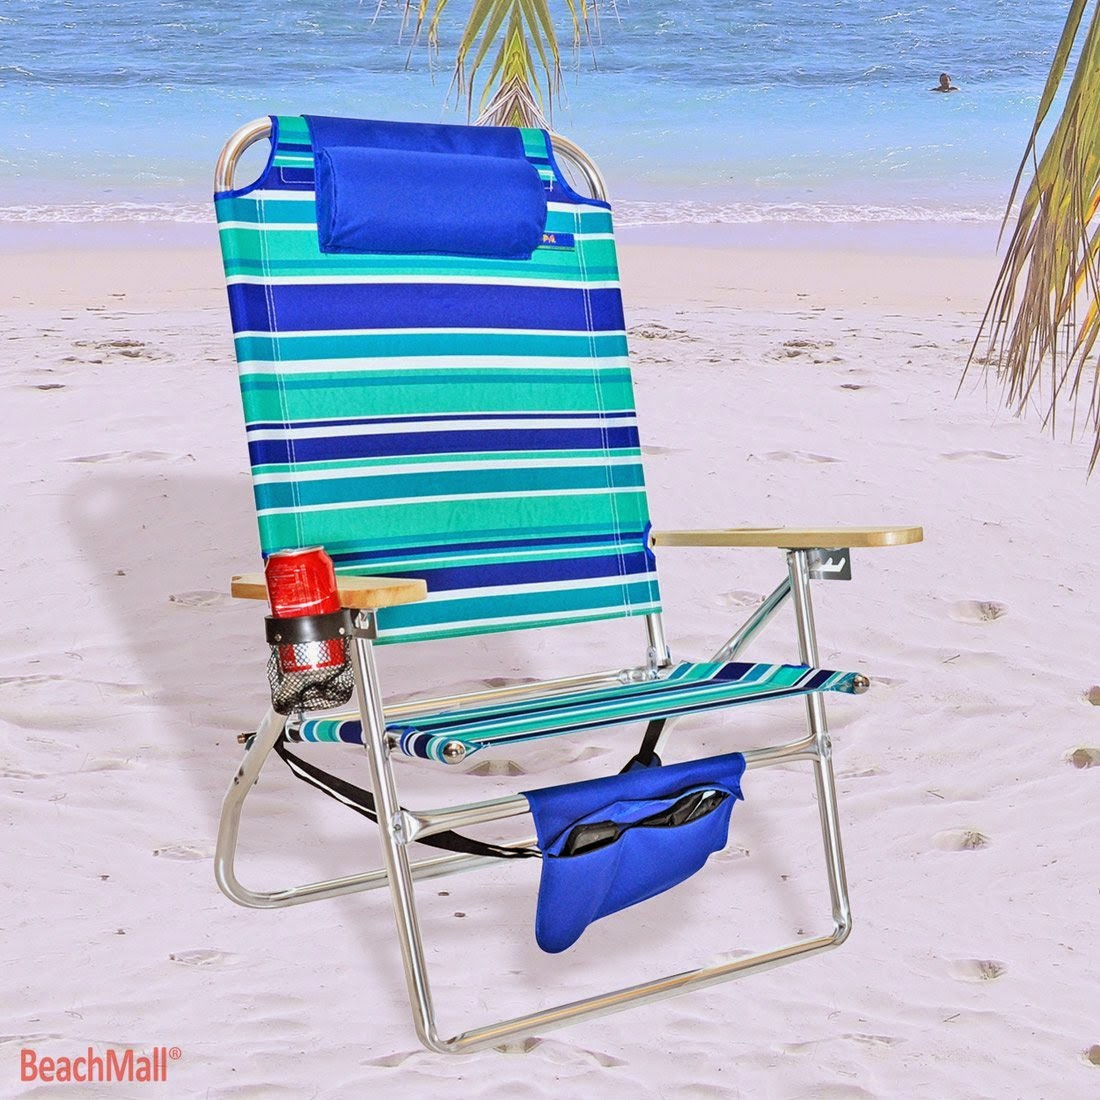 heavy duty beach chairs  sc 1 st  cheap beach chairs & cheap beach chairs: March 2014